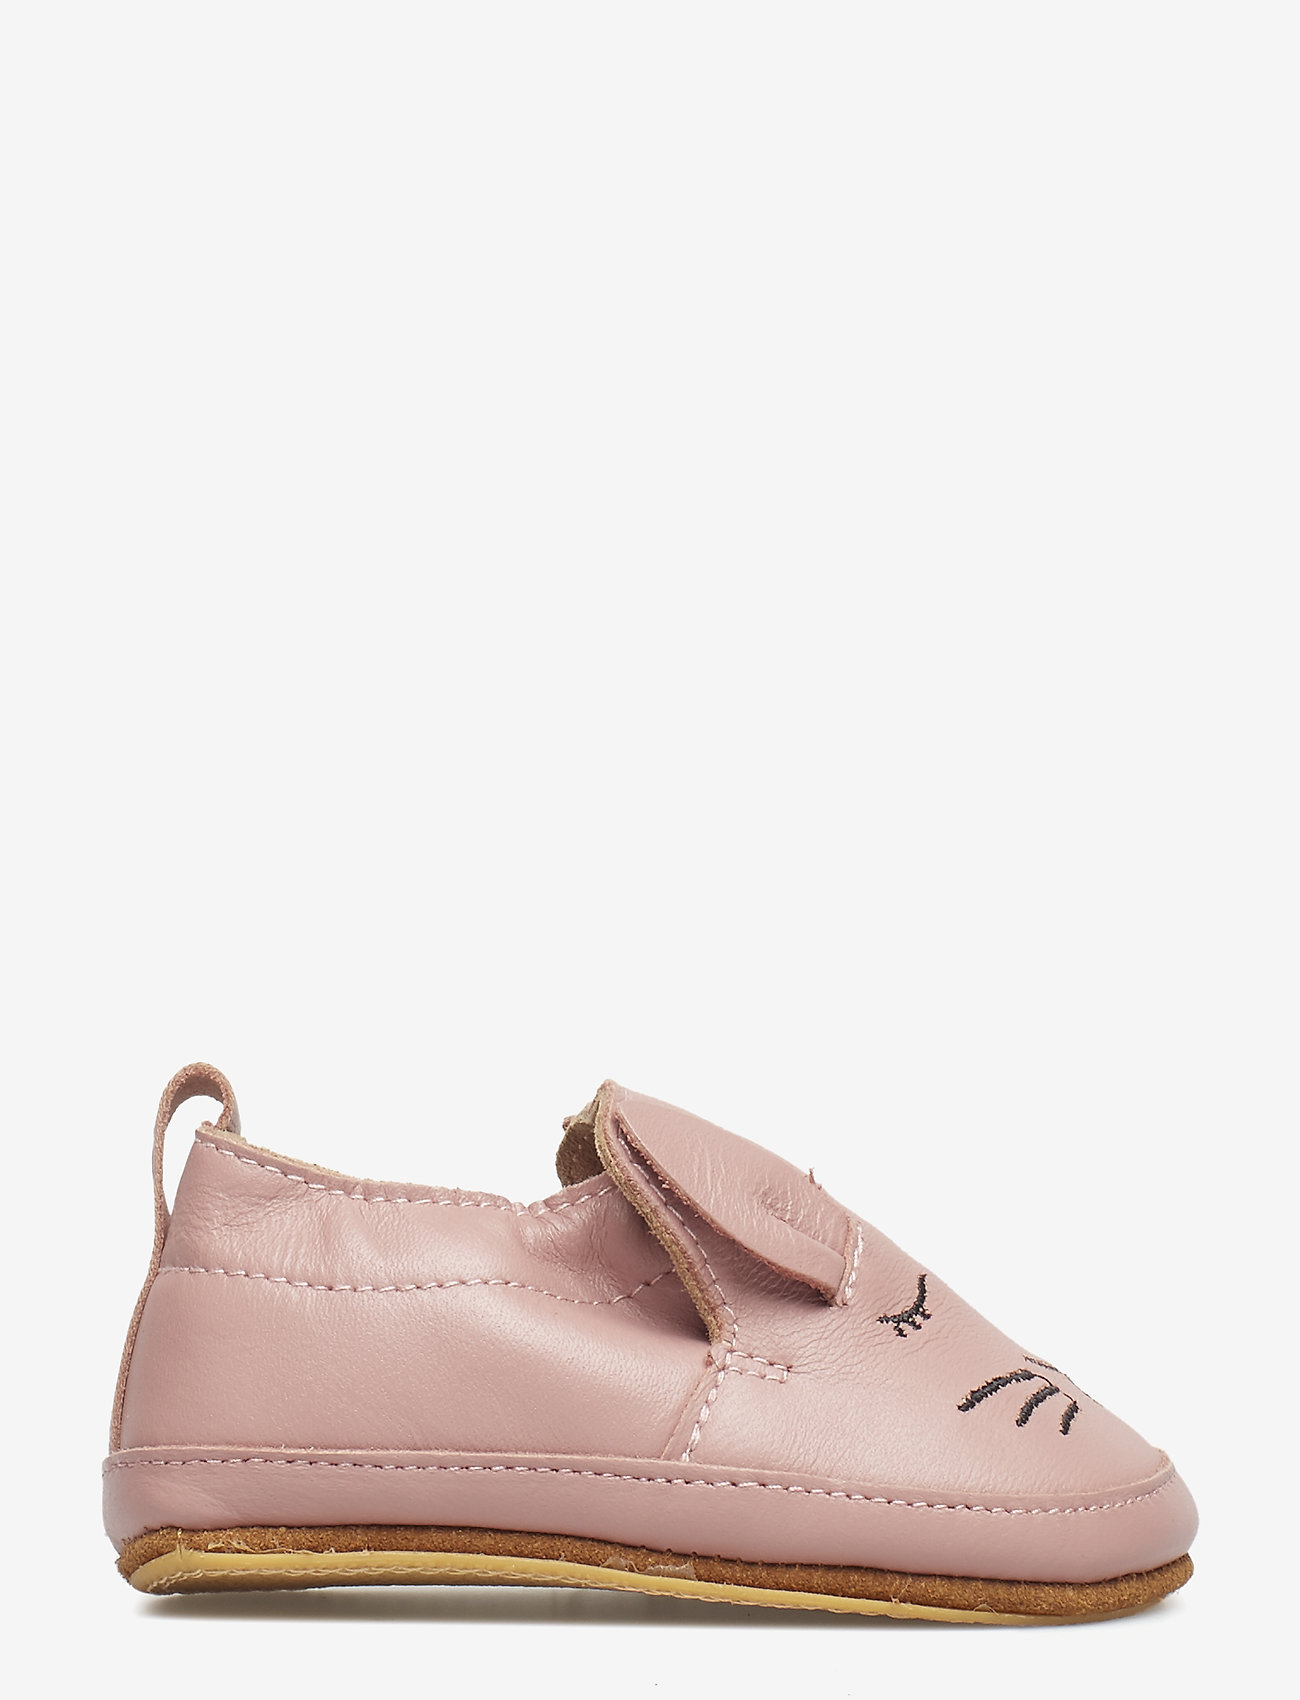 Melton - Luxury Leather Shoe - Rabbit - domowe - alt rosa - 1